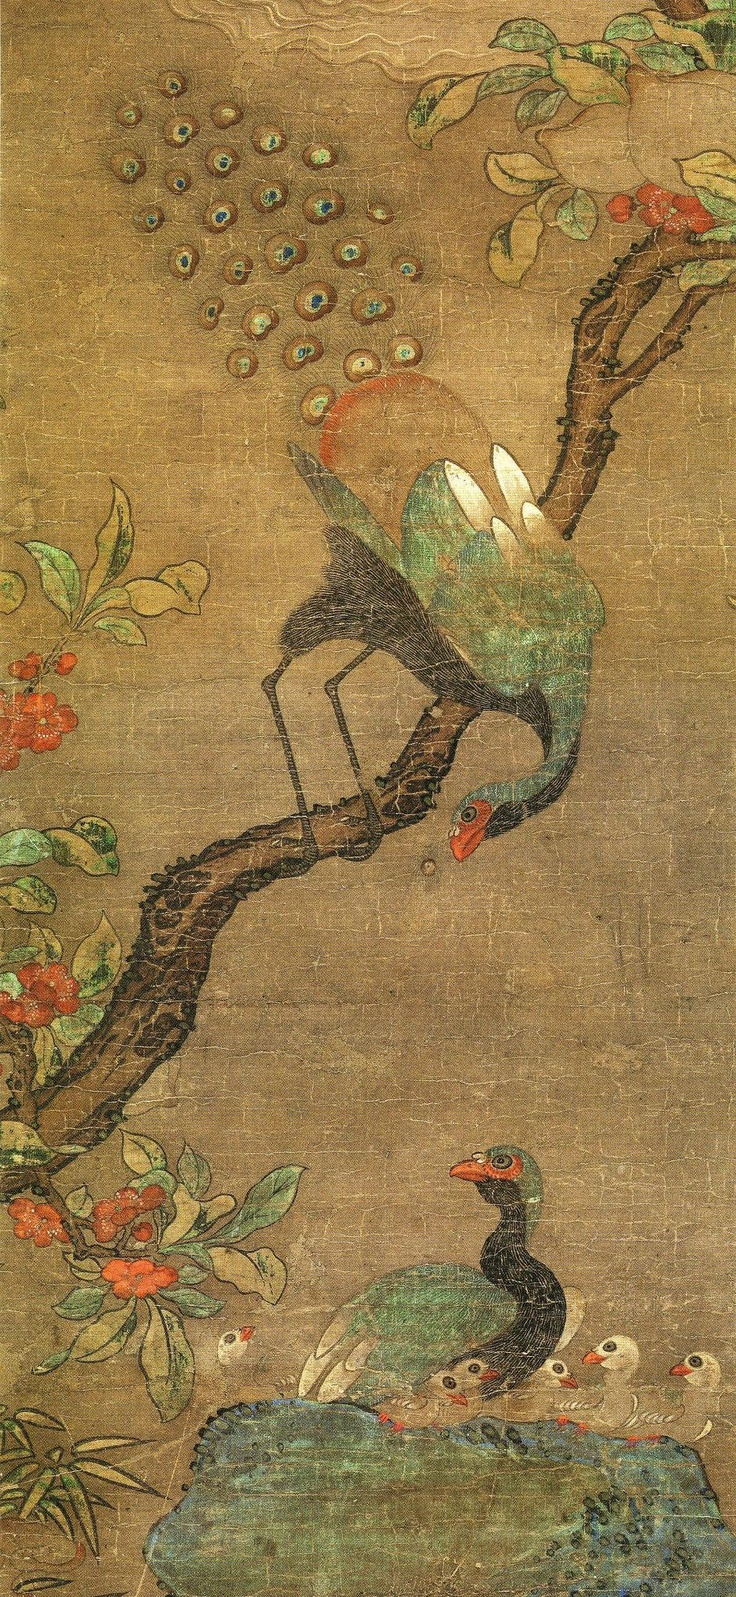 The peacock(공작) was considered a very noble, beautiful and good sign(吉祥). The peacock was a symbol of glamor, nobility and high office, because he got a gorgeous appearance.